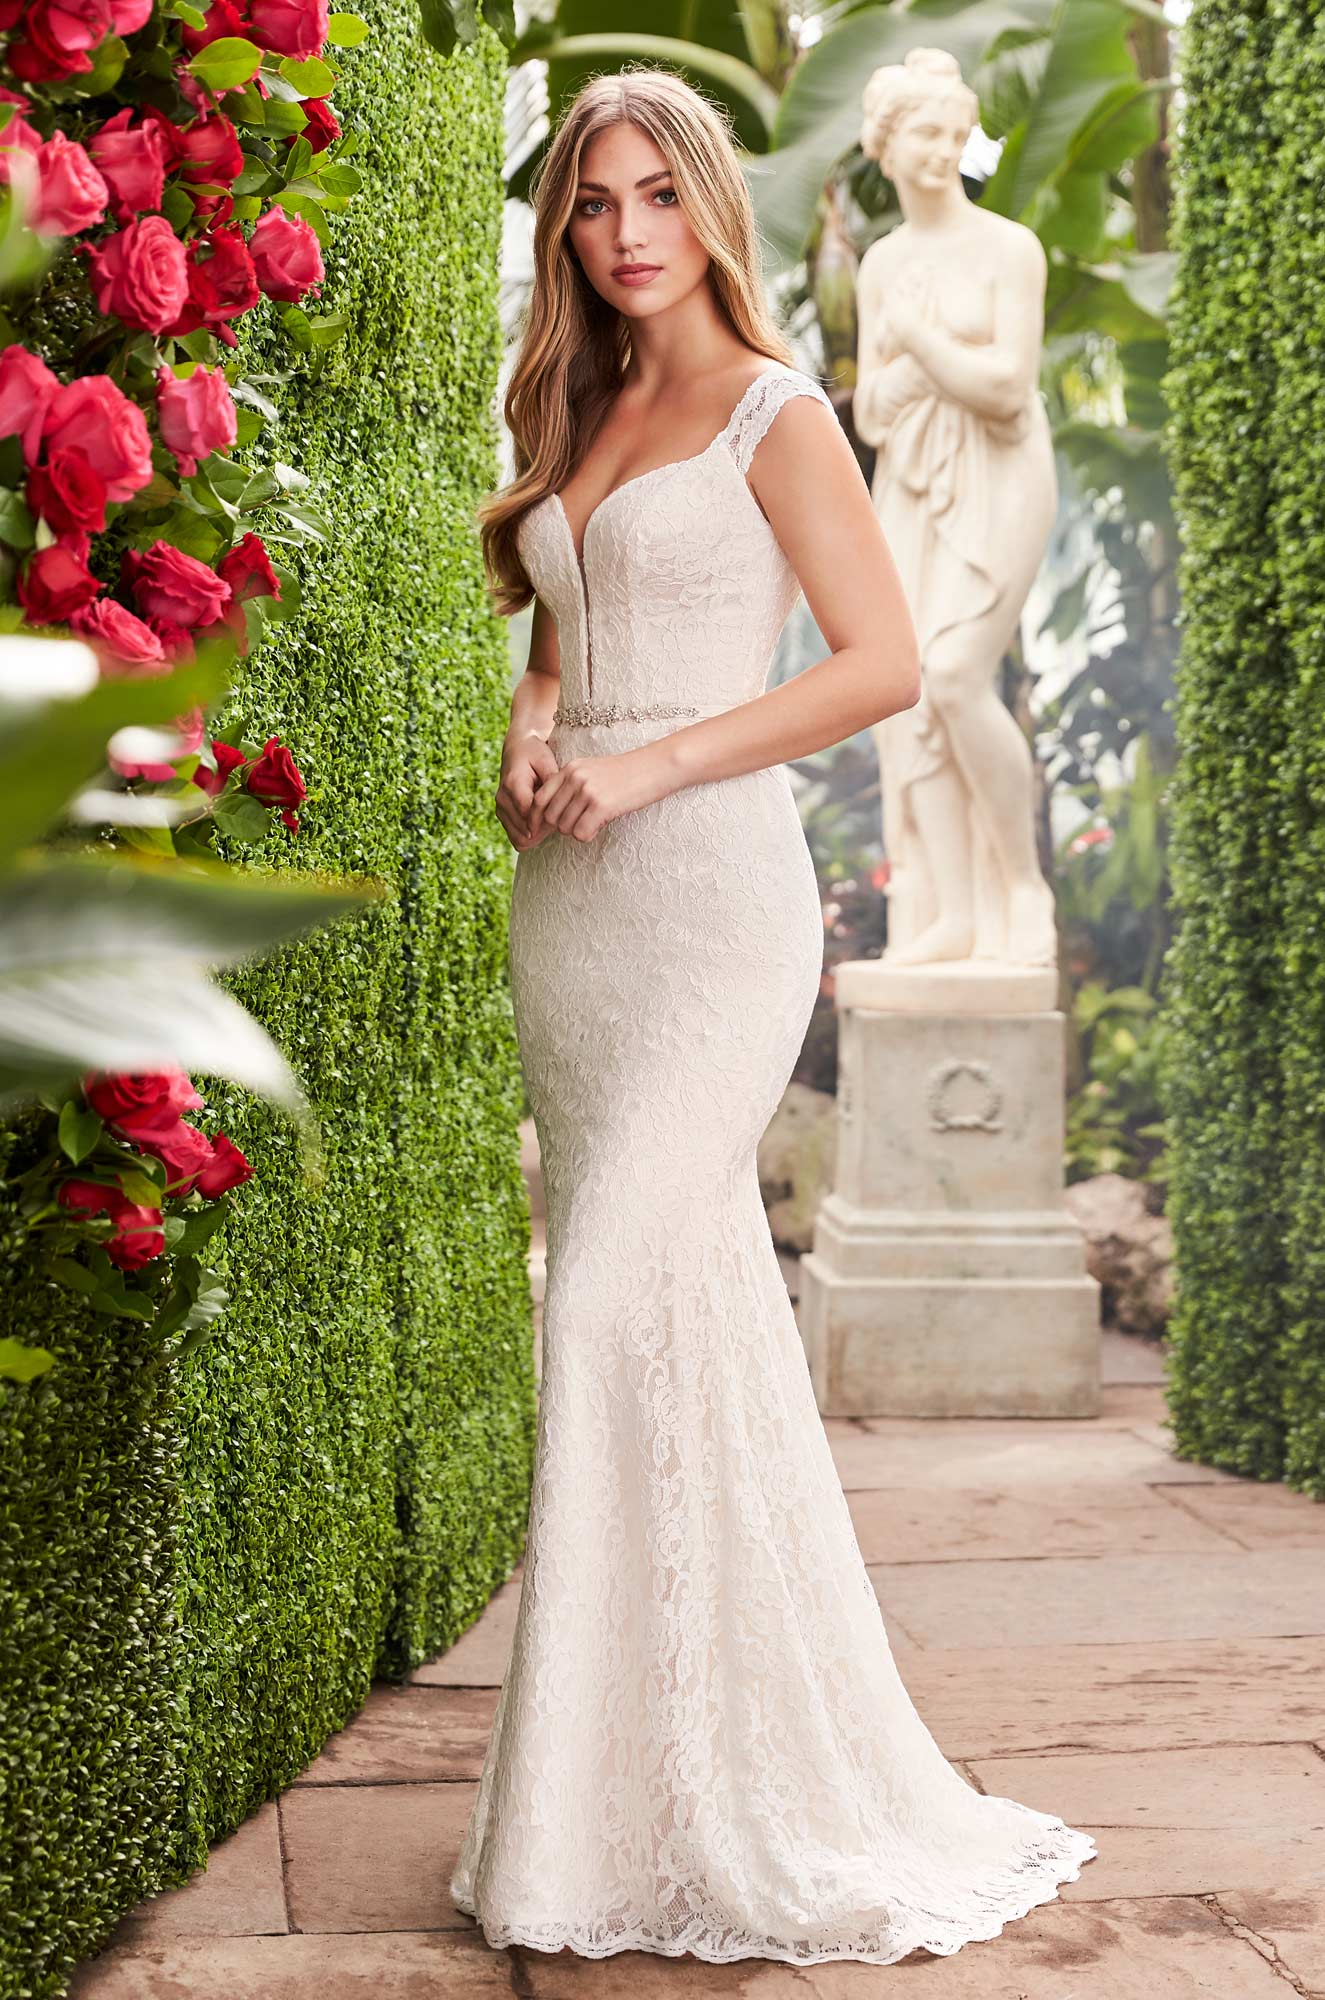 Sheer Lace Back Wedding Dress – Style #2271 | Mikaella Bridal